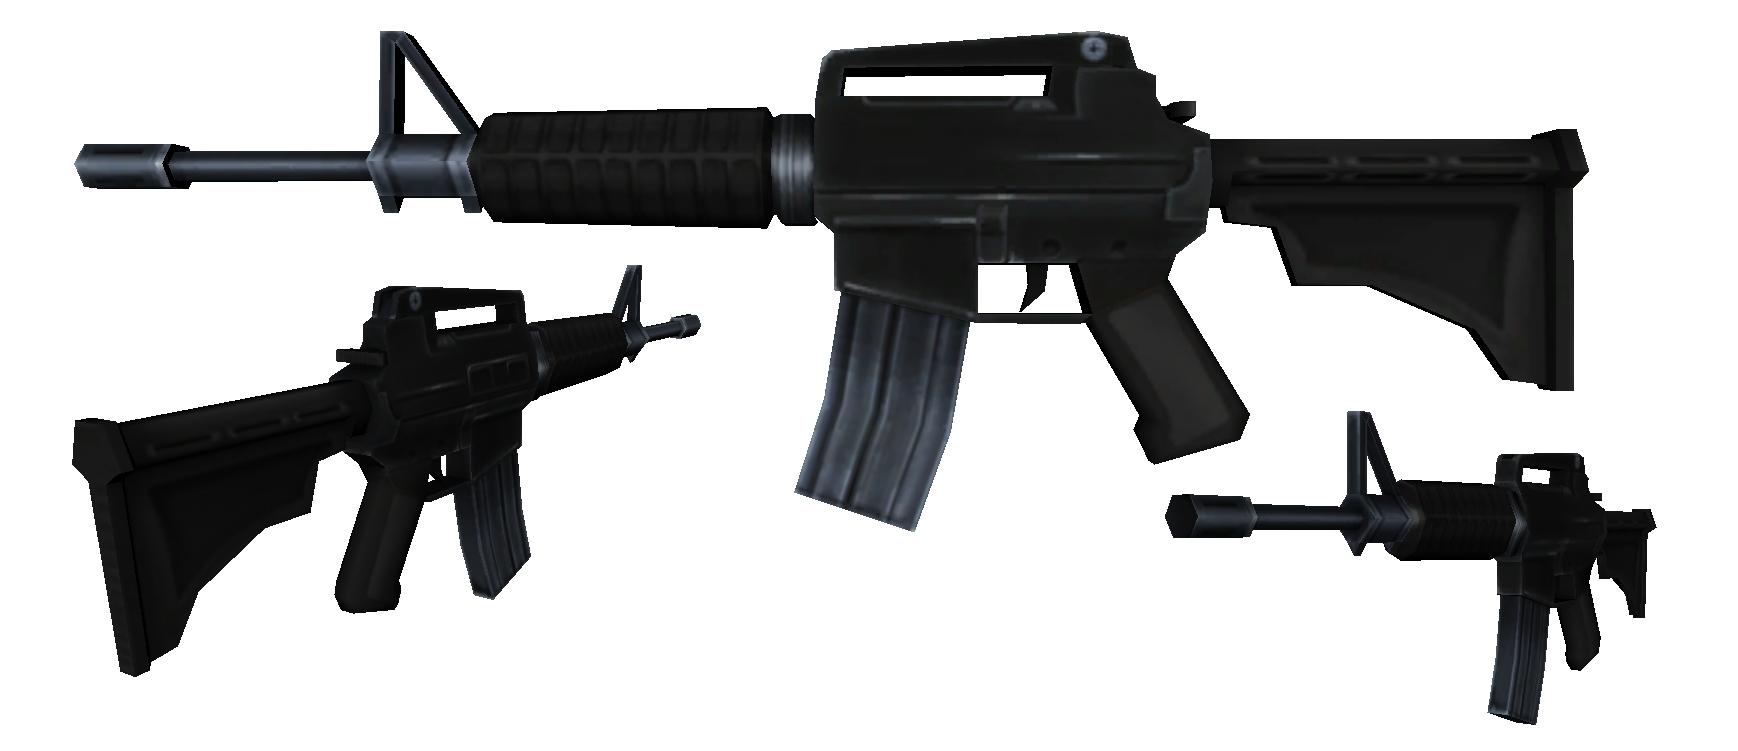 M16 ultimate team png. Image bfh m battlefield